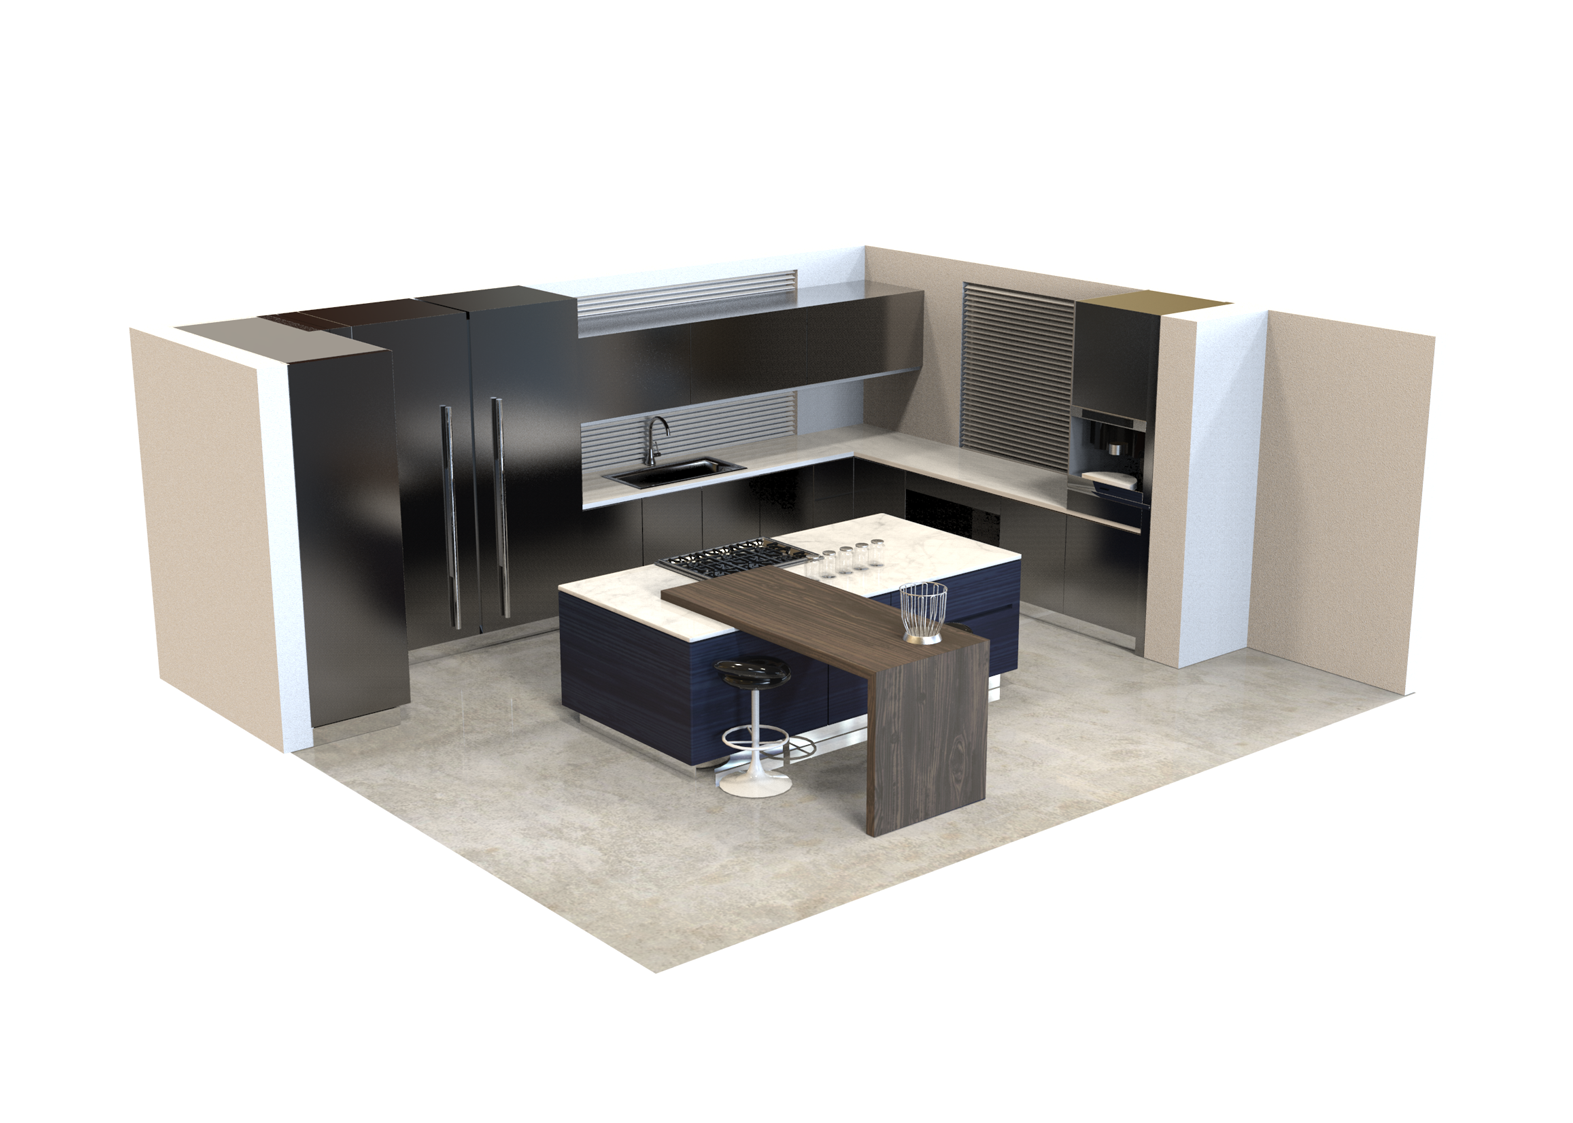 Project | Kitchen Remodel